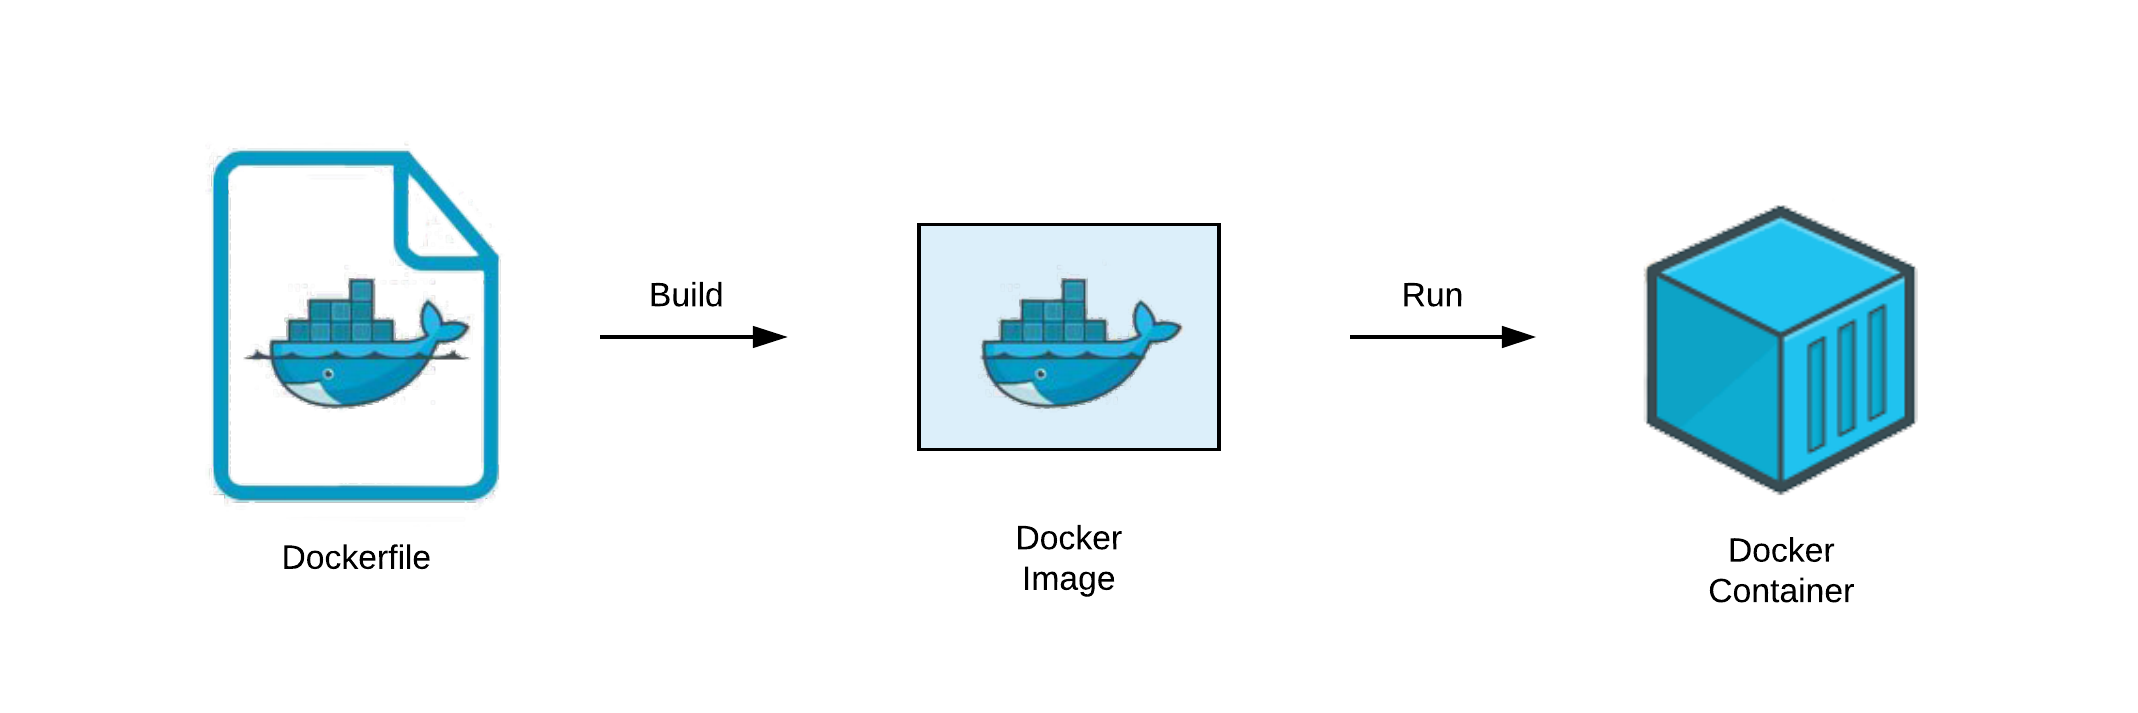 Docker containerization process.